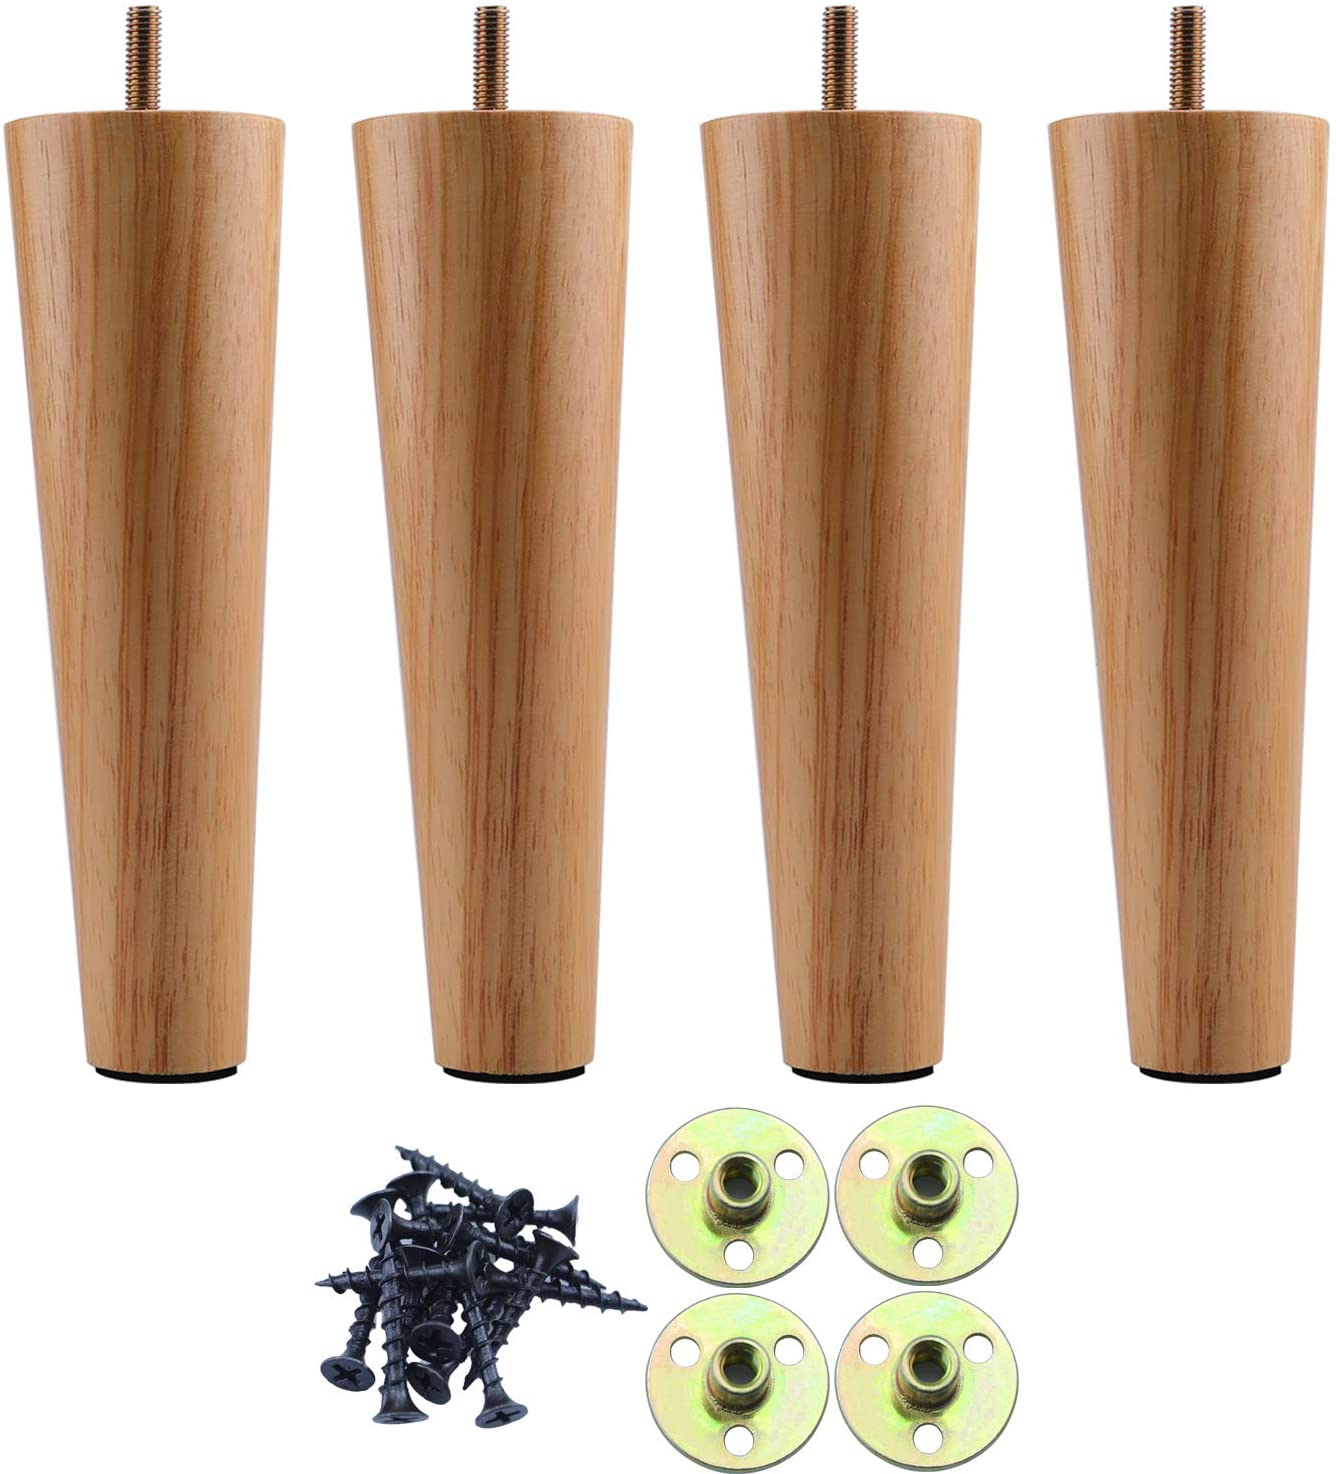 Round Solid Wood Furniture Feet Sofa Legs 6 inch, Natural Wood Couch Legs, Replacement Legs for Armchair, Cabinet, Chair, Mid Century Modern Dresser Or Home DIY Projects Bun Feet